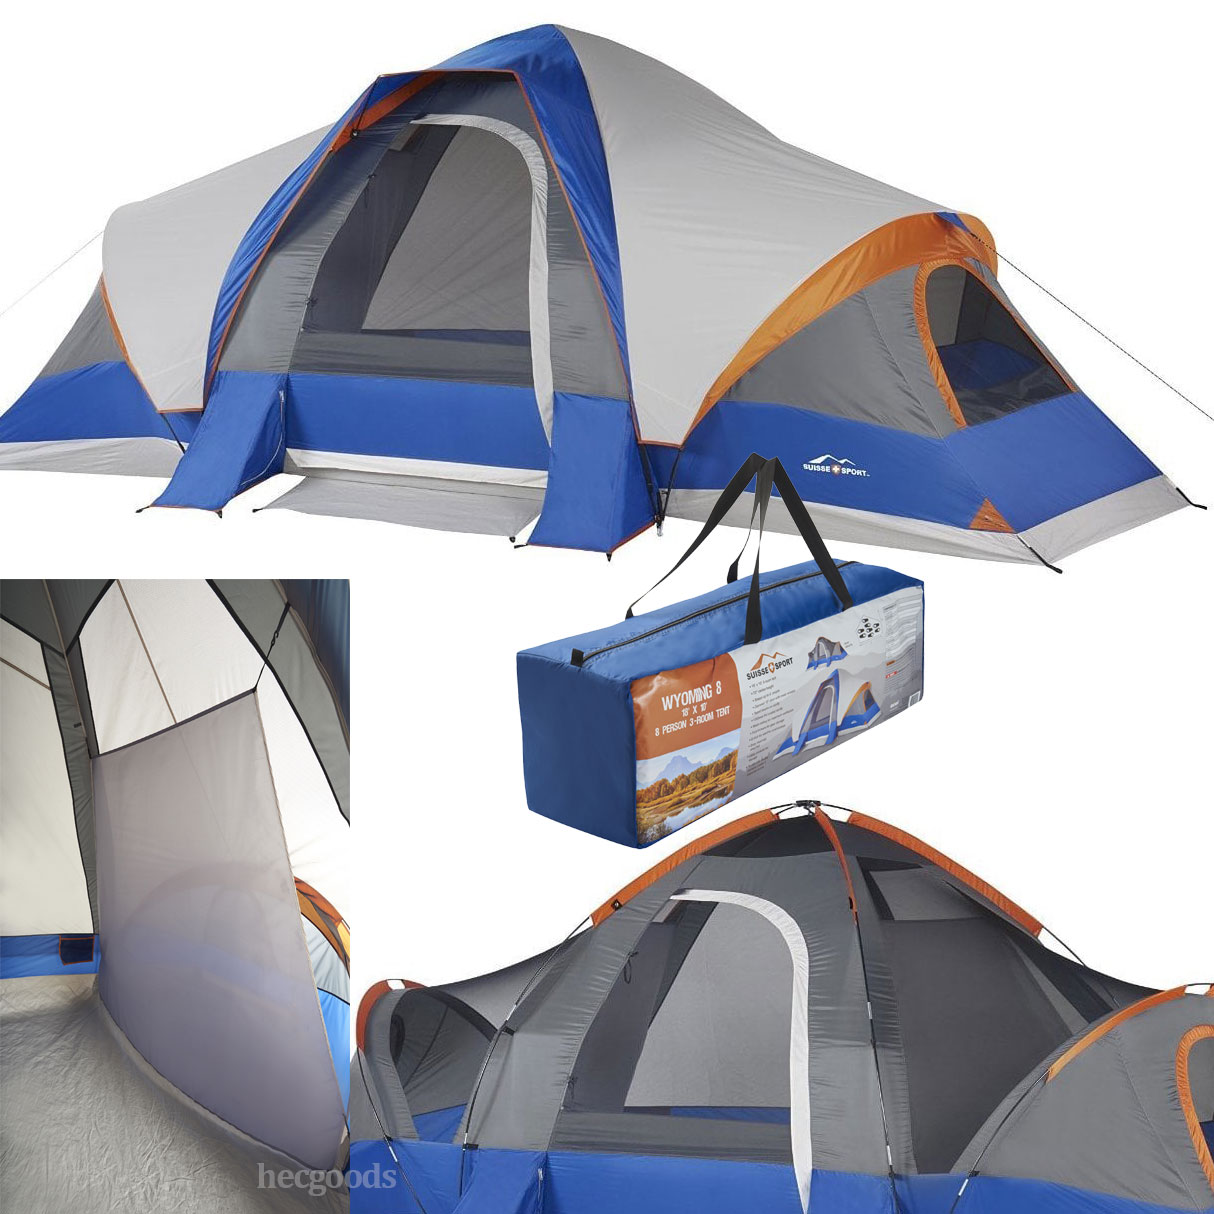 info for d9138 25e28 Details about Big 8-Person 3-Room Cabin Tent with Large Sun Canopy Windows  Outdoor Camping